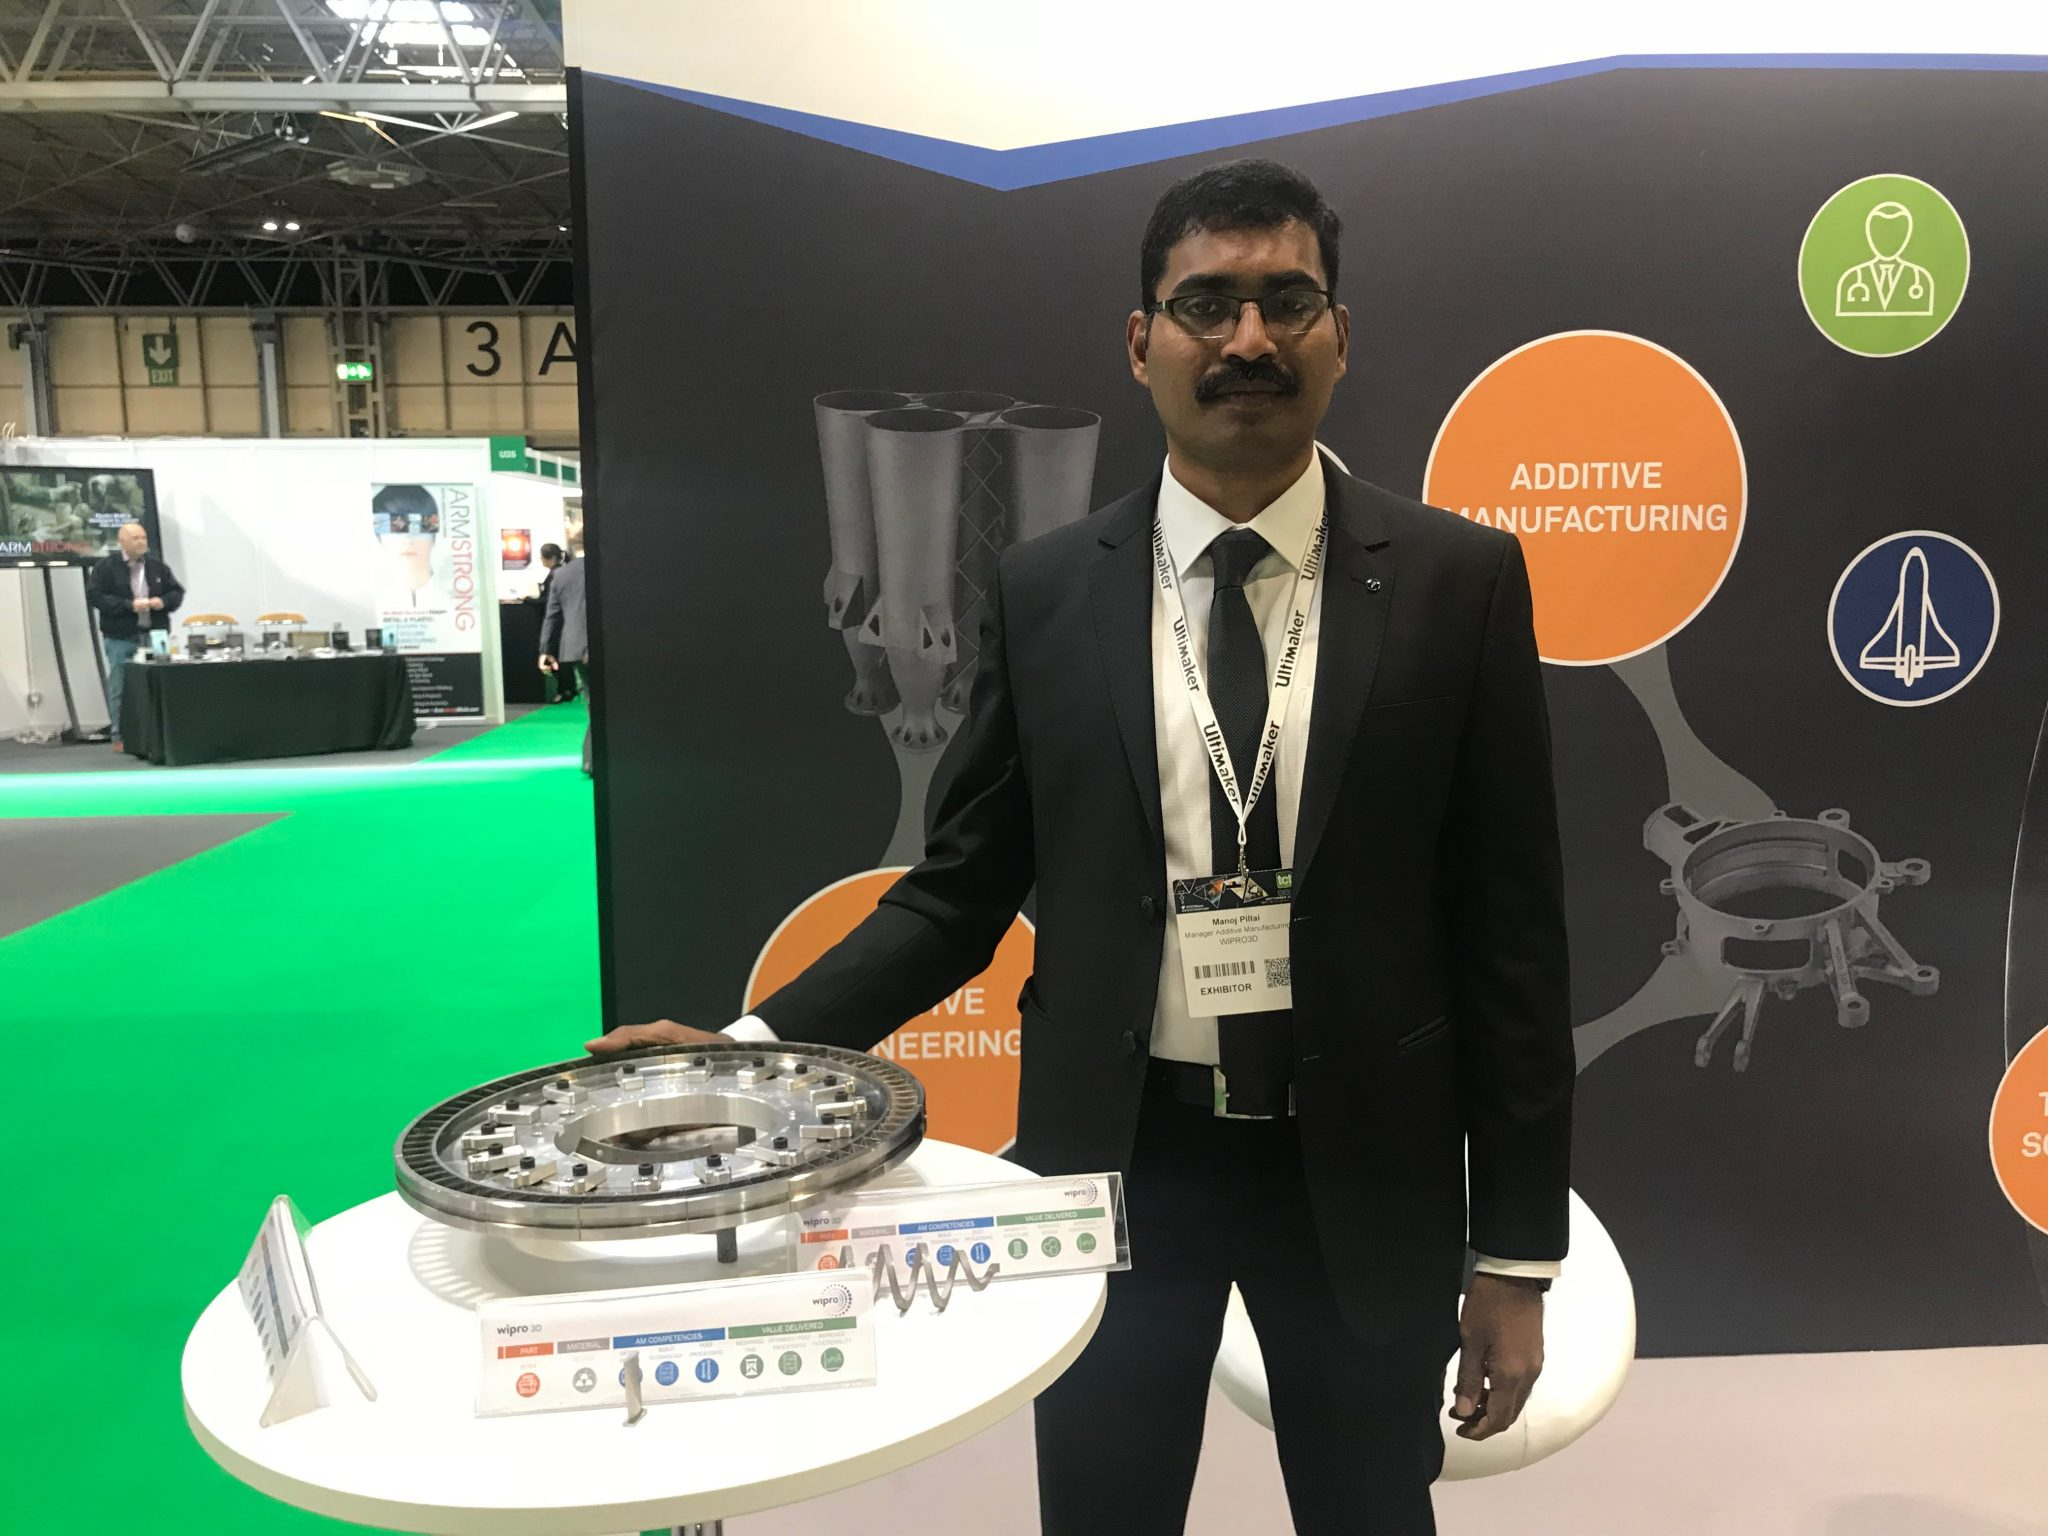 Manoj S Pillai of Wipro 3D at TCT 2018 in the UK. Photo by Swamini Khanvilkar.